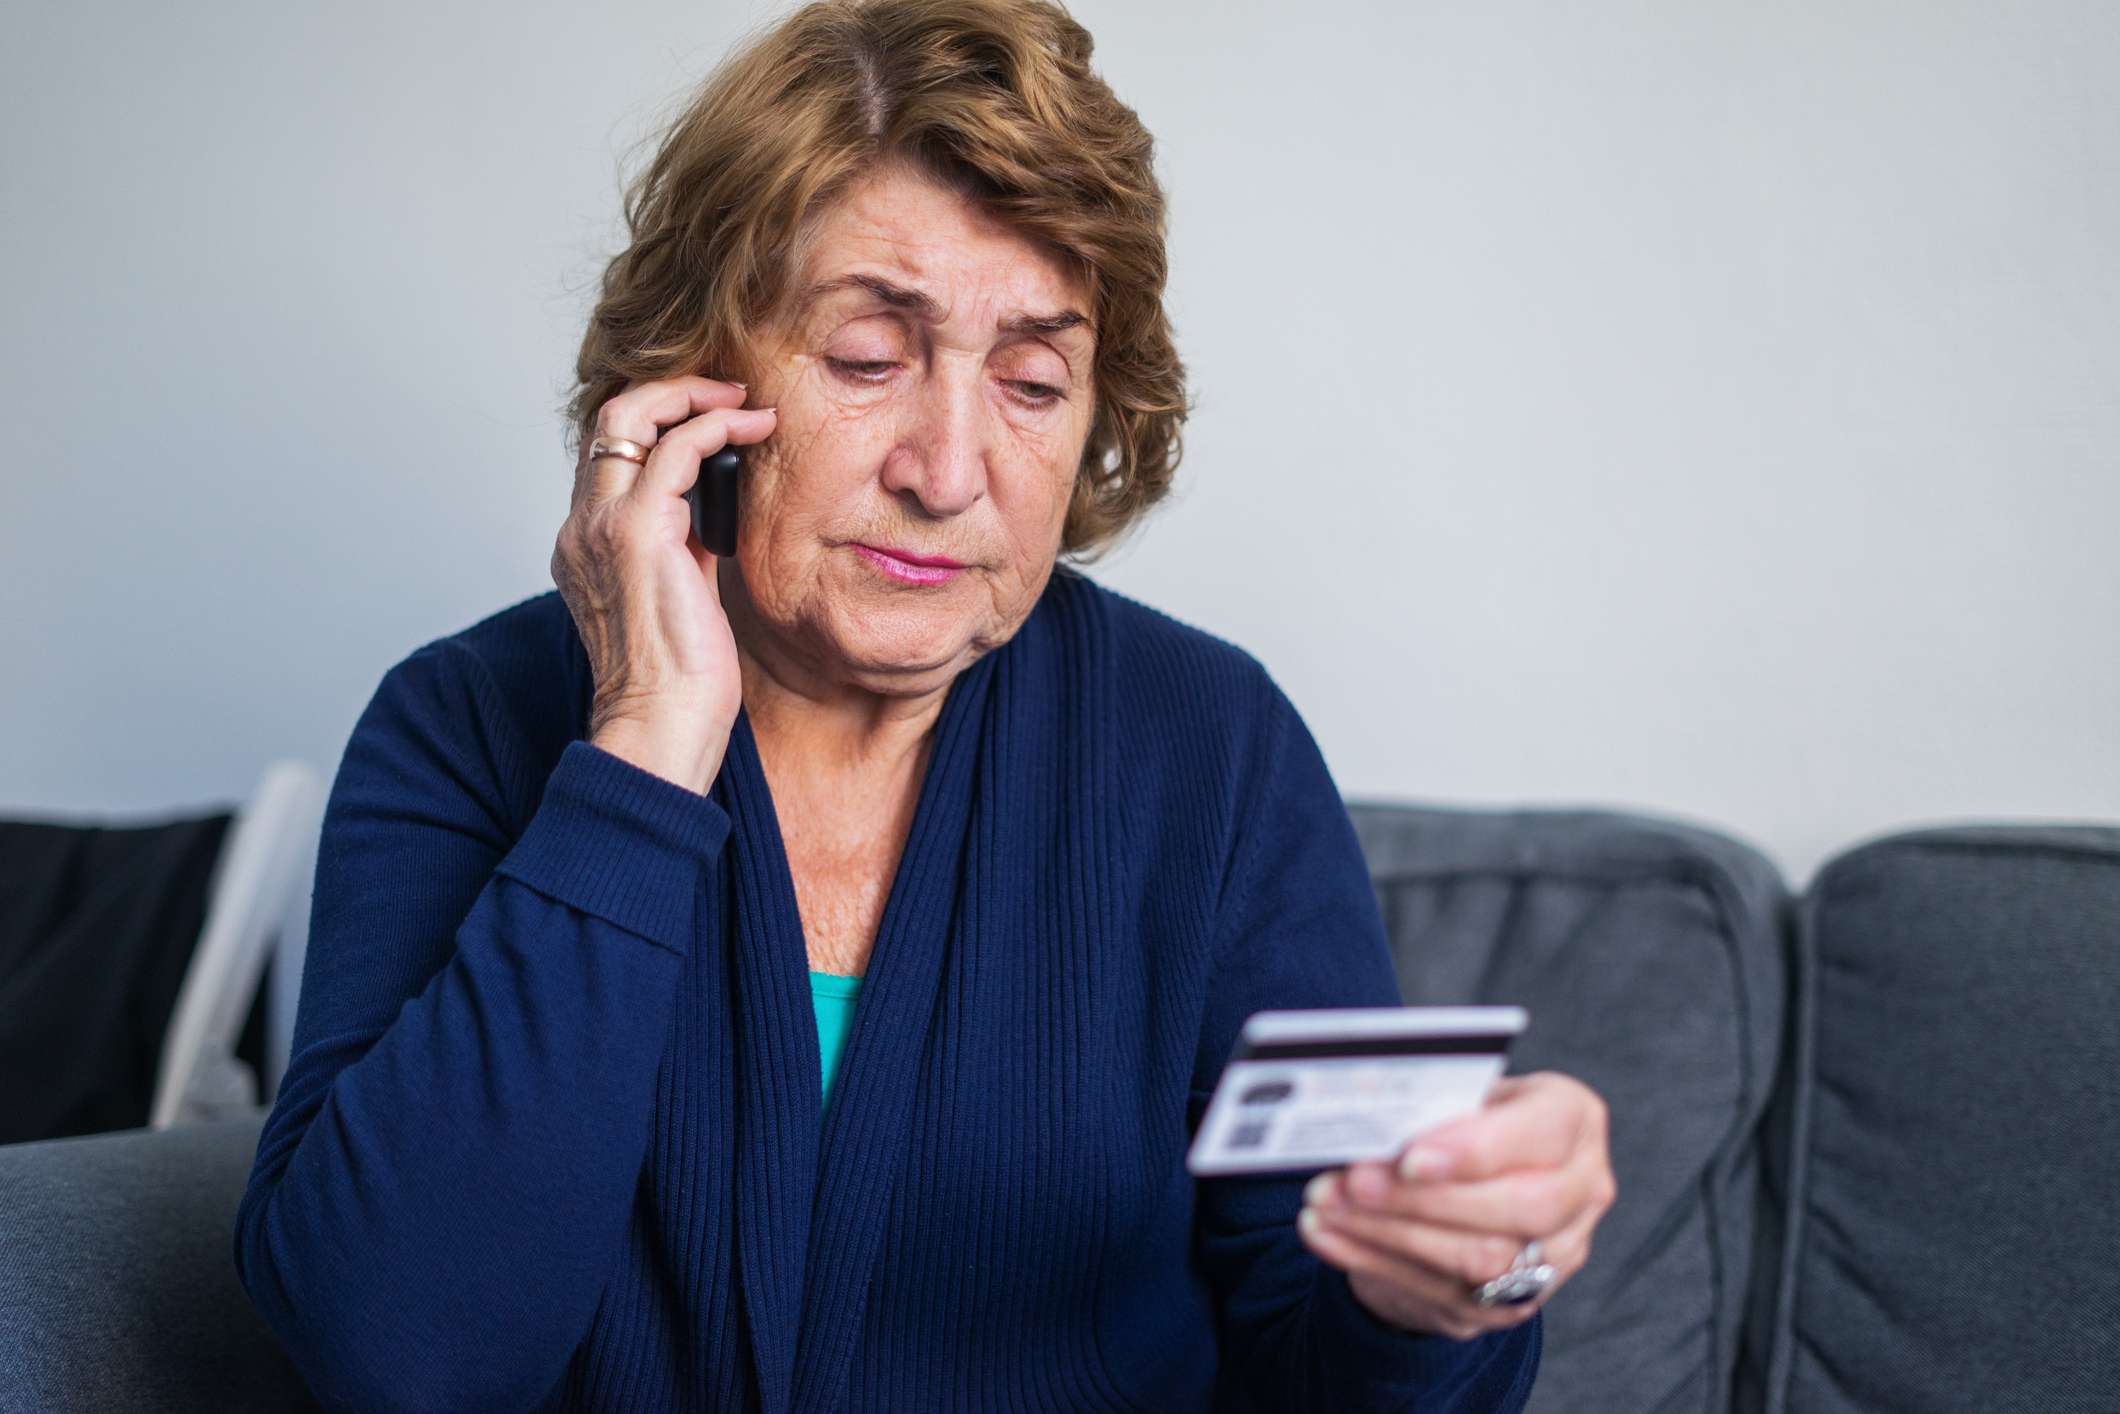 Woman Being Asked to Pay Over the Phone